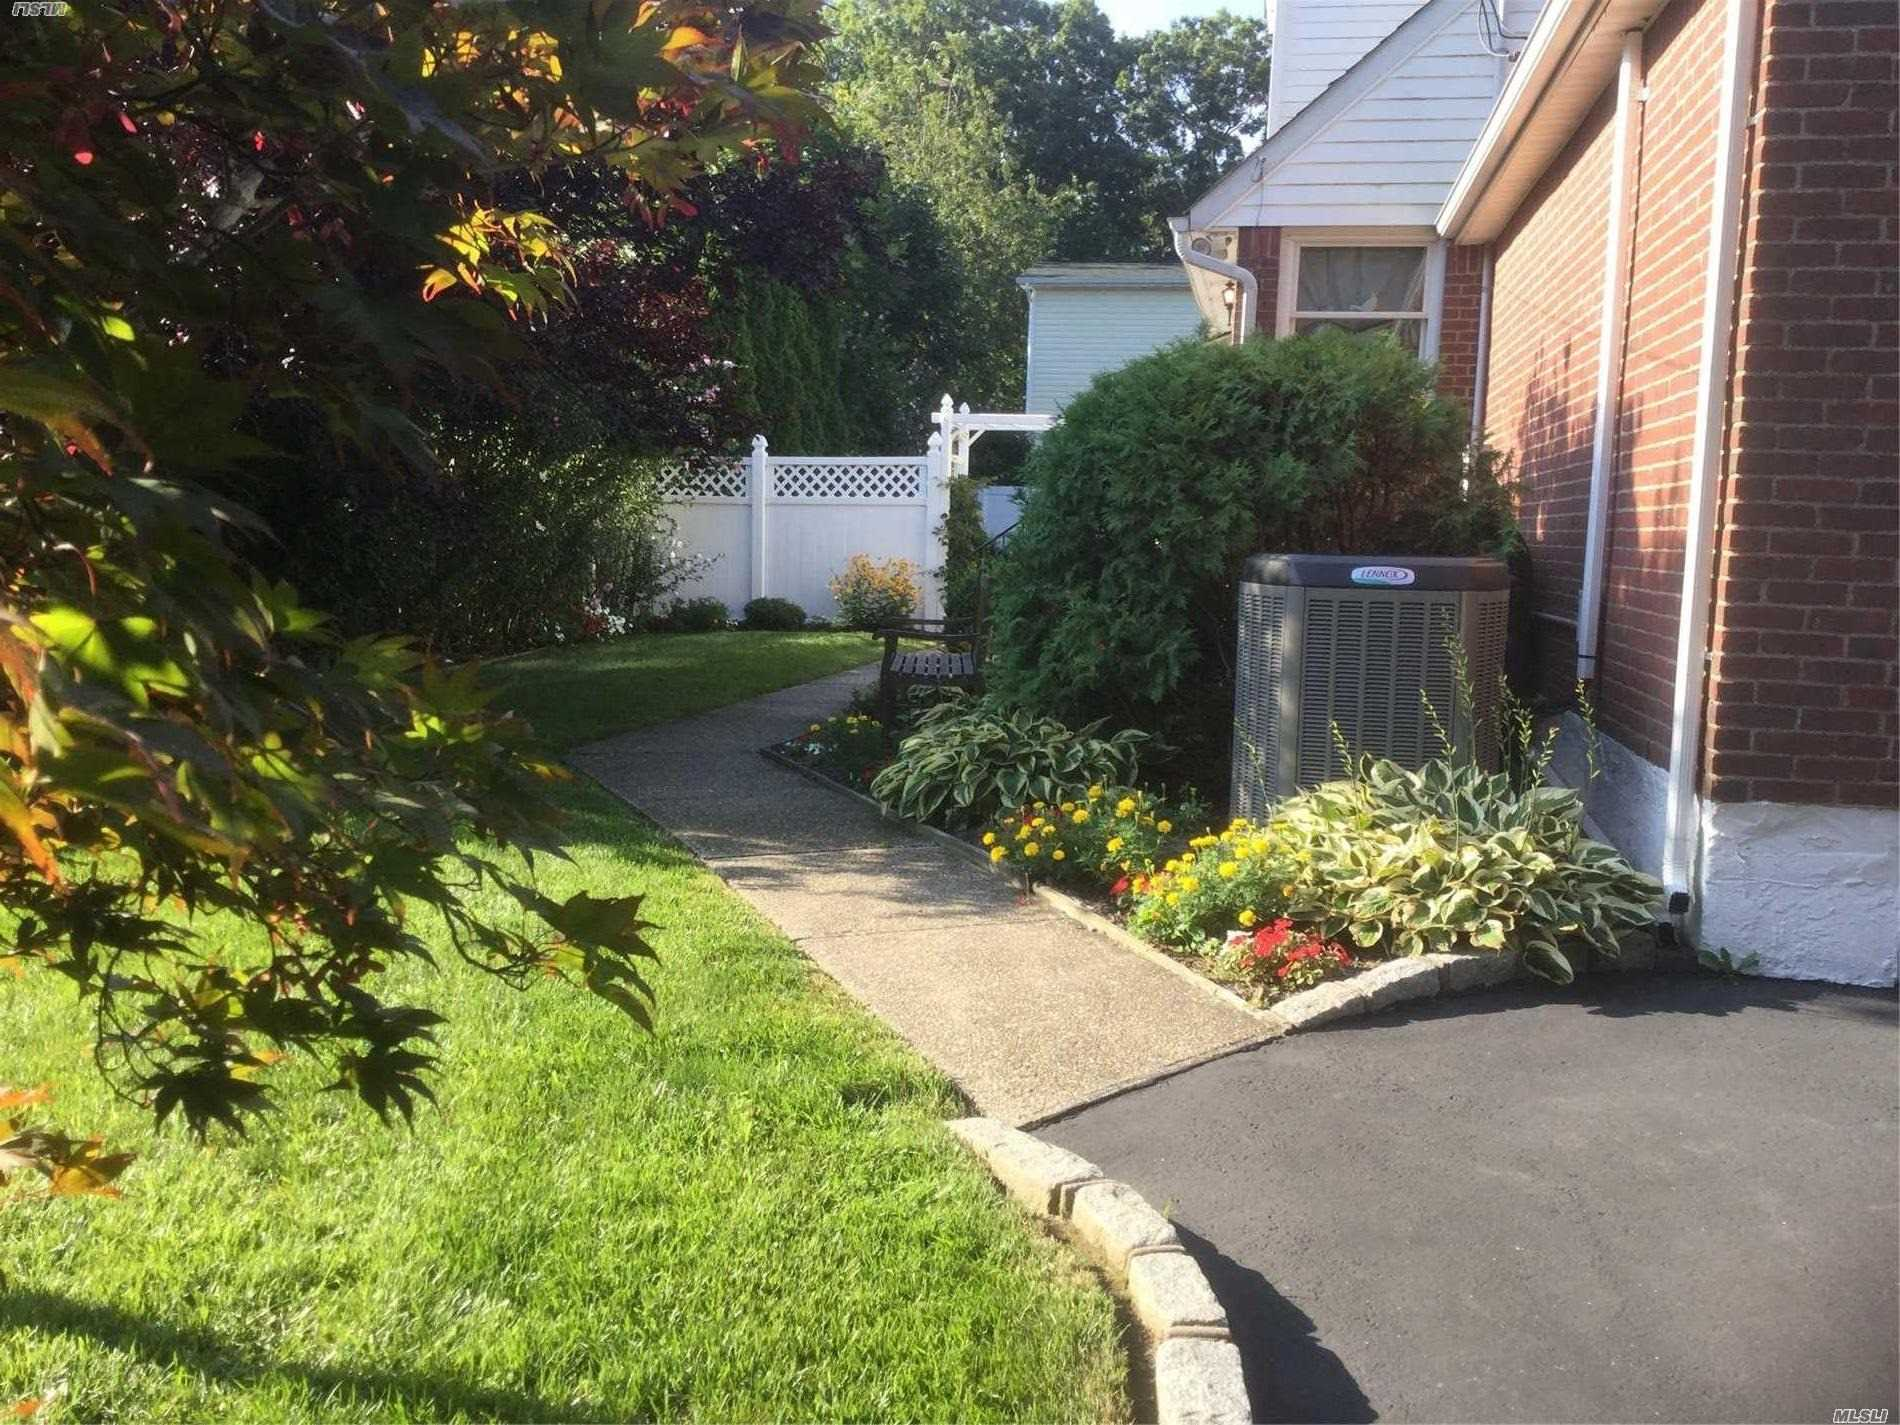 Immaculate 4 Bedroom Cape. Recently Renovated Kitchen/Granite Counters, Newly Renovated Baths, And Whole Interior Freshly Painted.All New Carpet On Second Floor And Refinished Wood Floors On Main Level. Lovely Gardens With A Waterfall Pond. Fenced Back Yard.